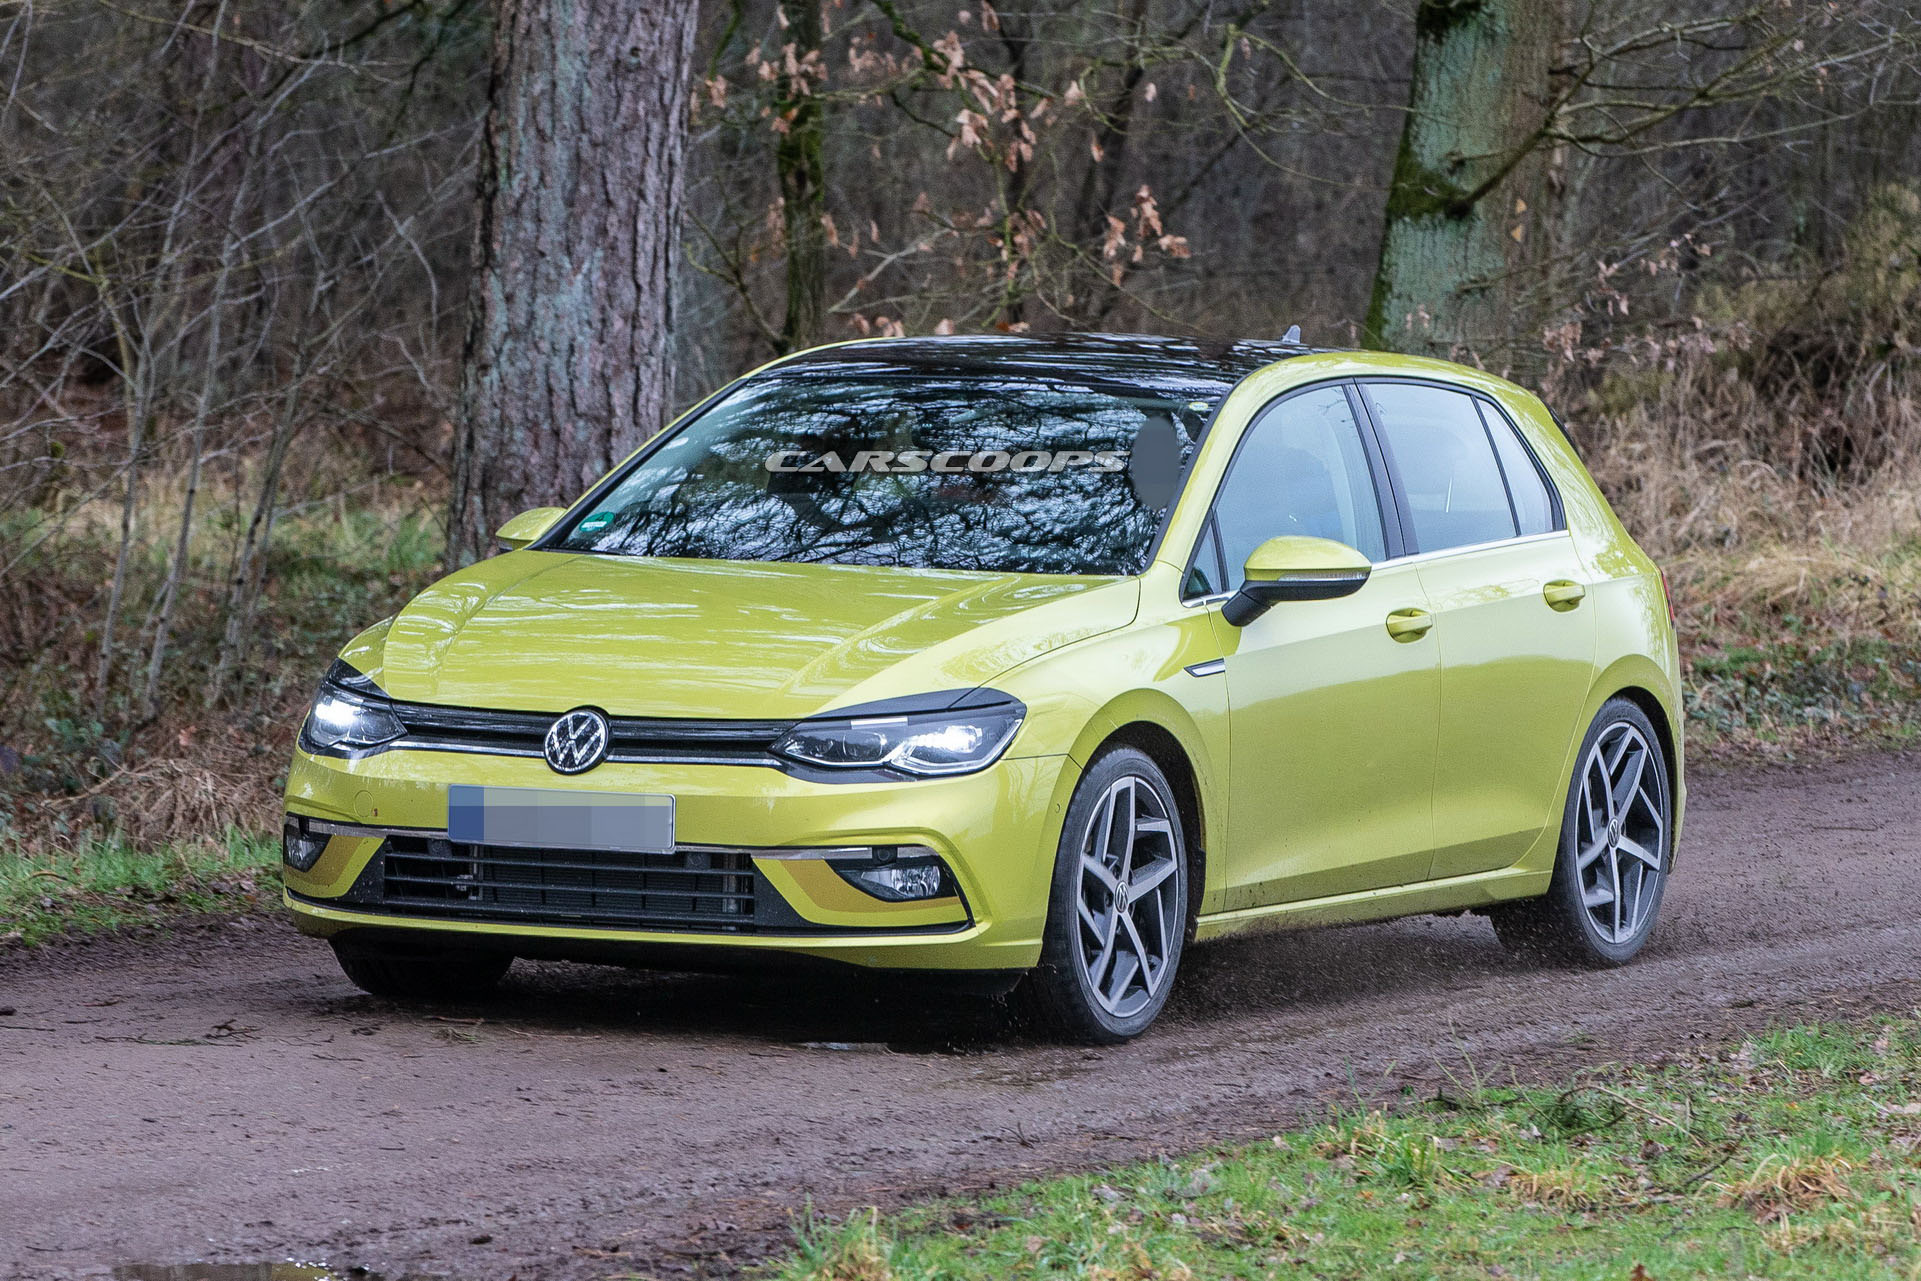 2020 vw golf mk8 to go on sale february following delays. Black Bedroom Furniture Sets. Home Design Ideas